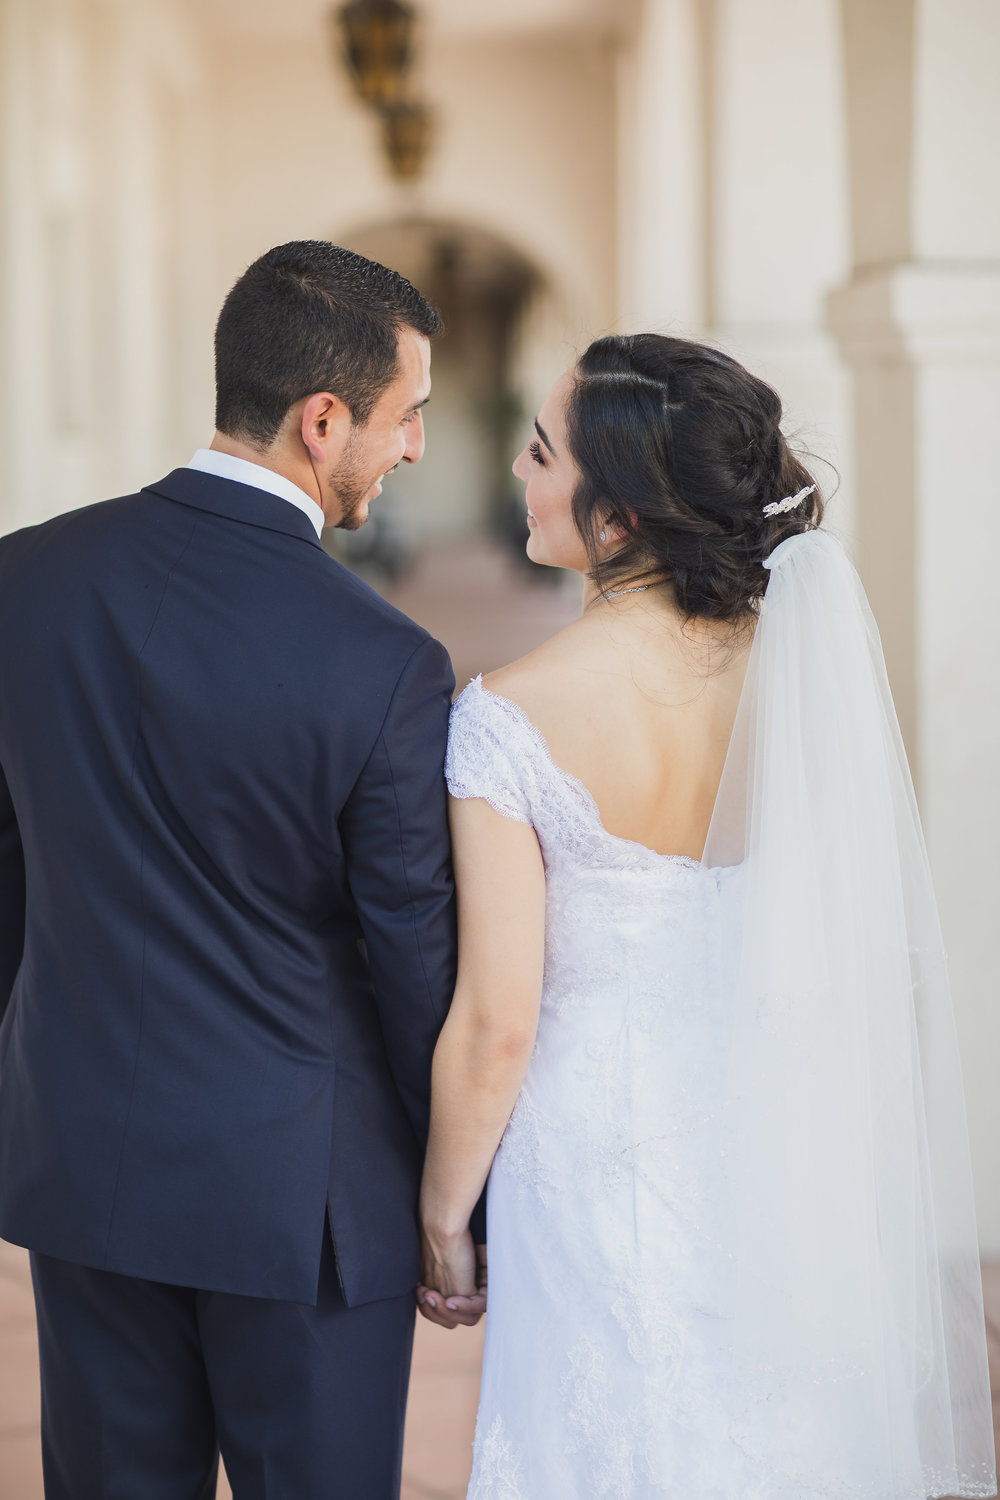 Romantic Wedding Picture of Bride & Groom at San Gabriel Mission.jpg